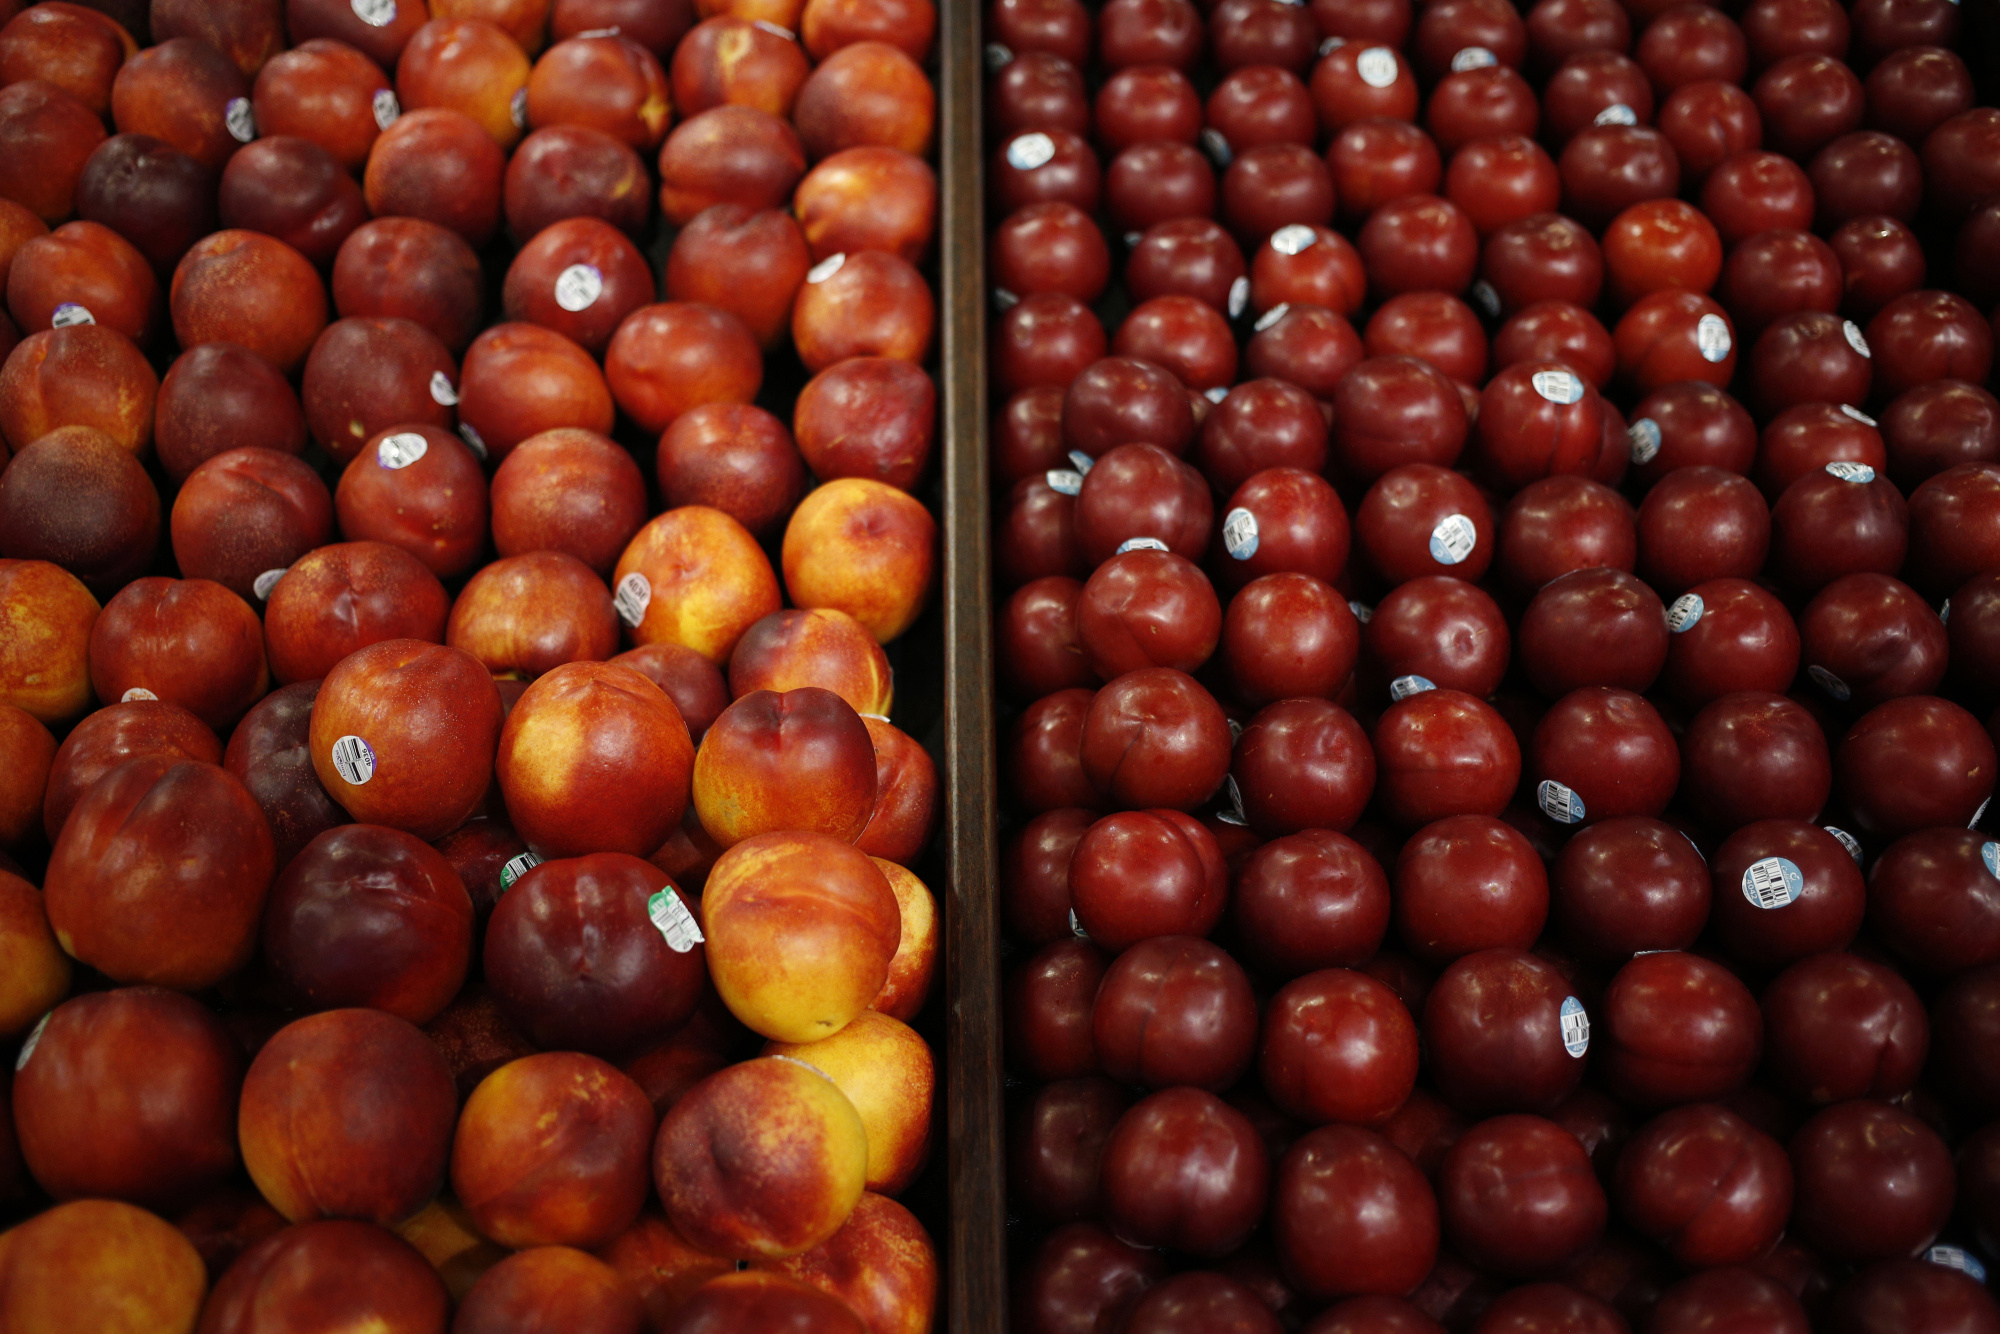 Nectarines are displayed for sale inside a Kroger Co. grocery store in Louisville, Kentucky, U.S., on Tuesday, Feb. 7, 2017. Photographer: Luke Sharrett/Bloomberg